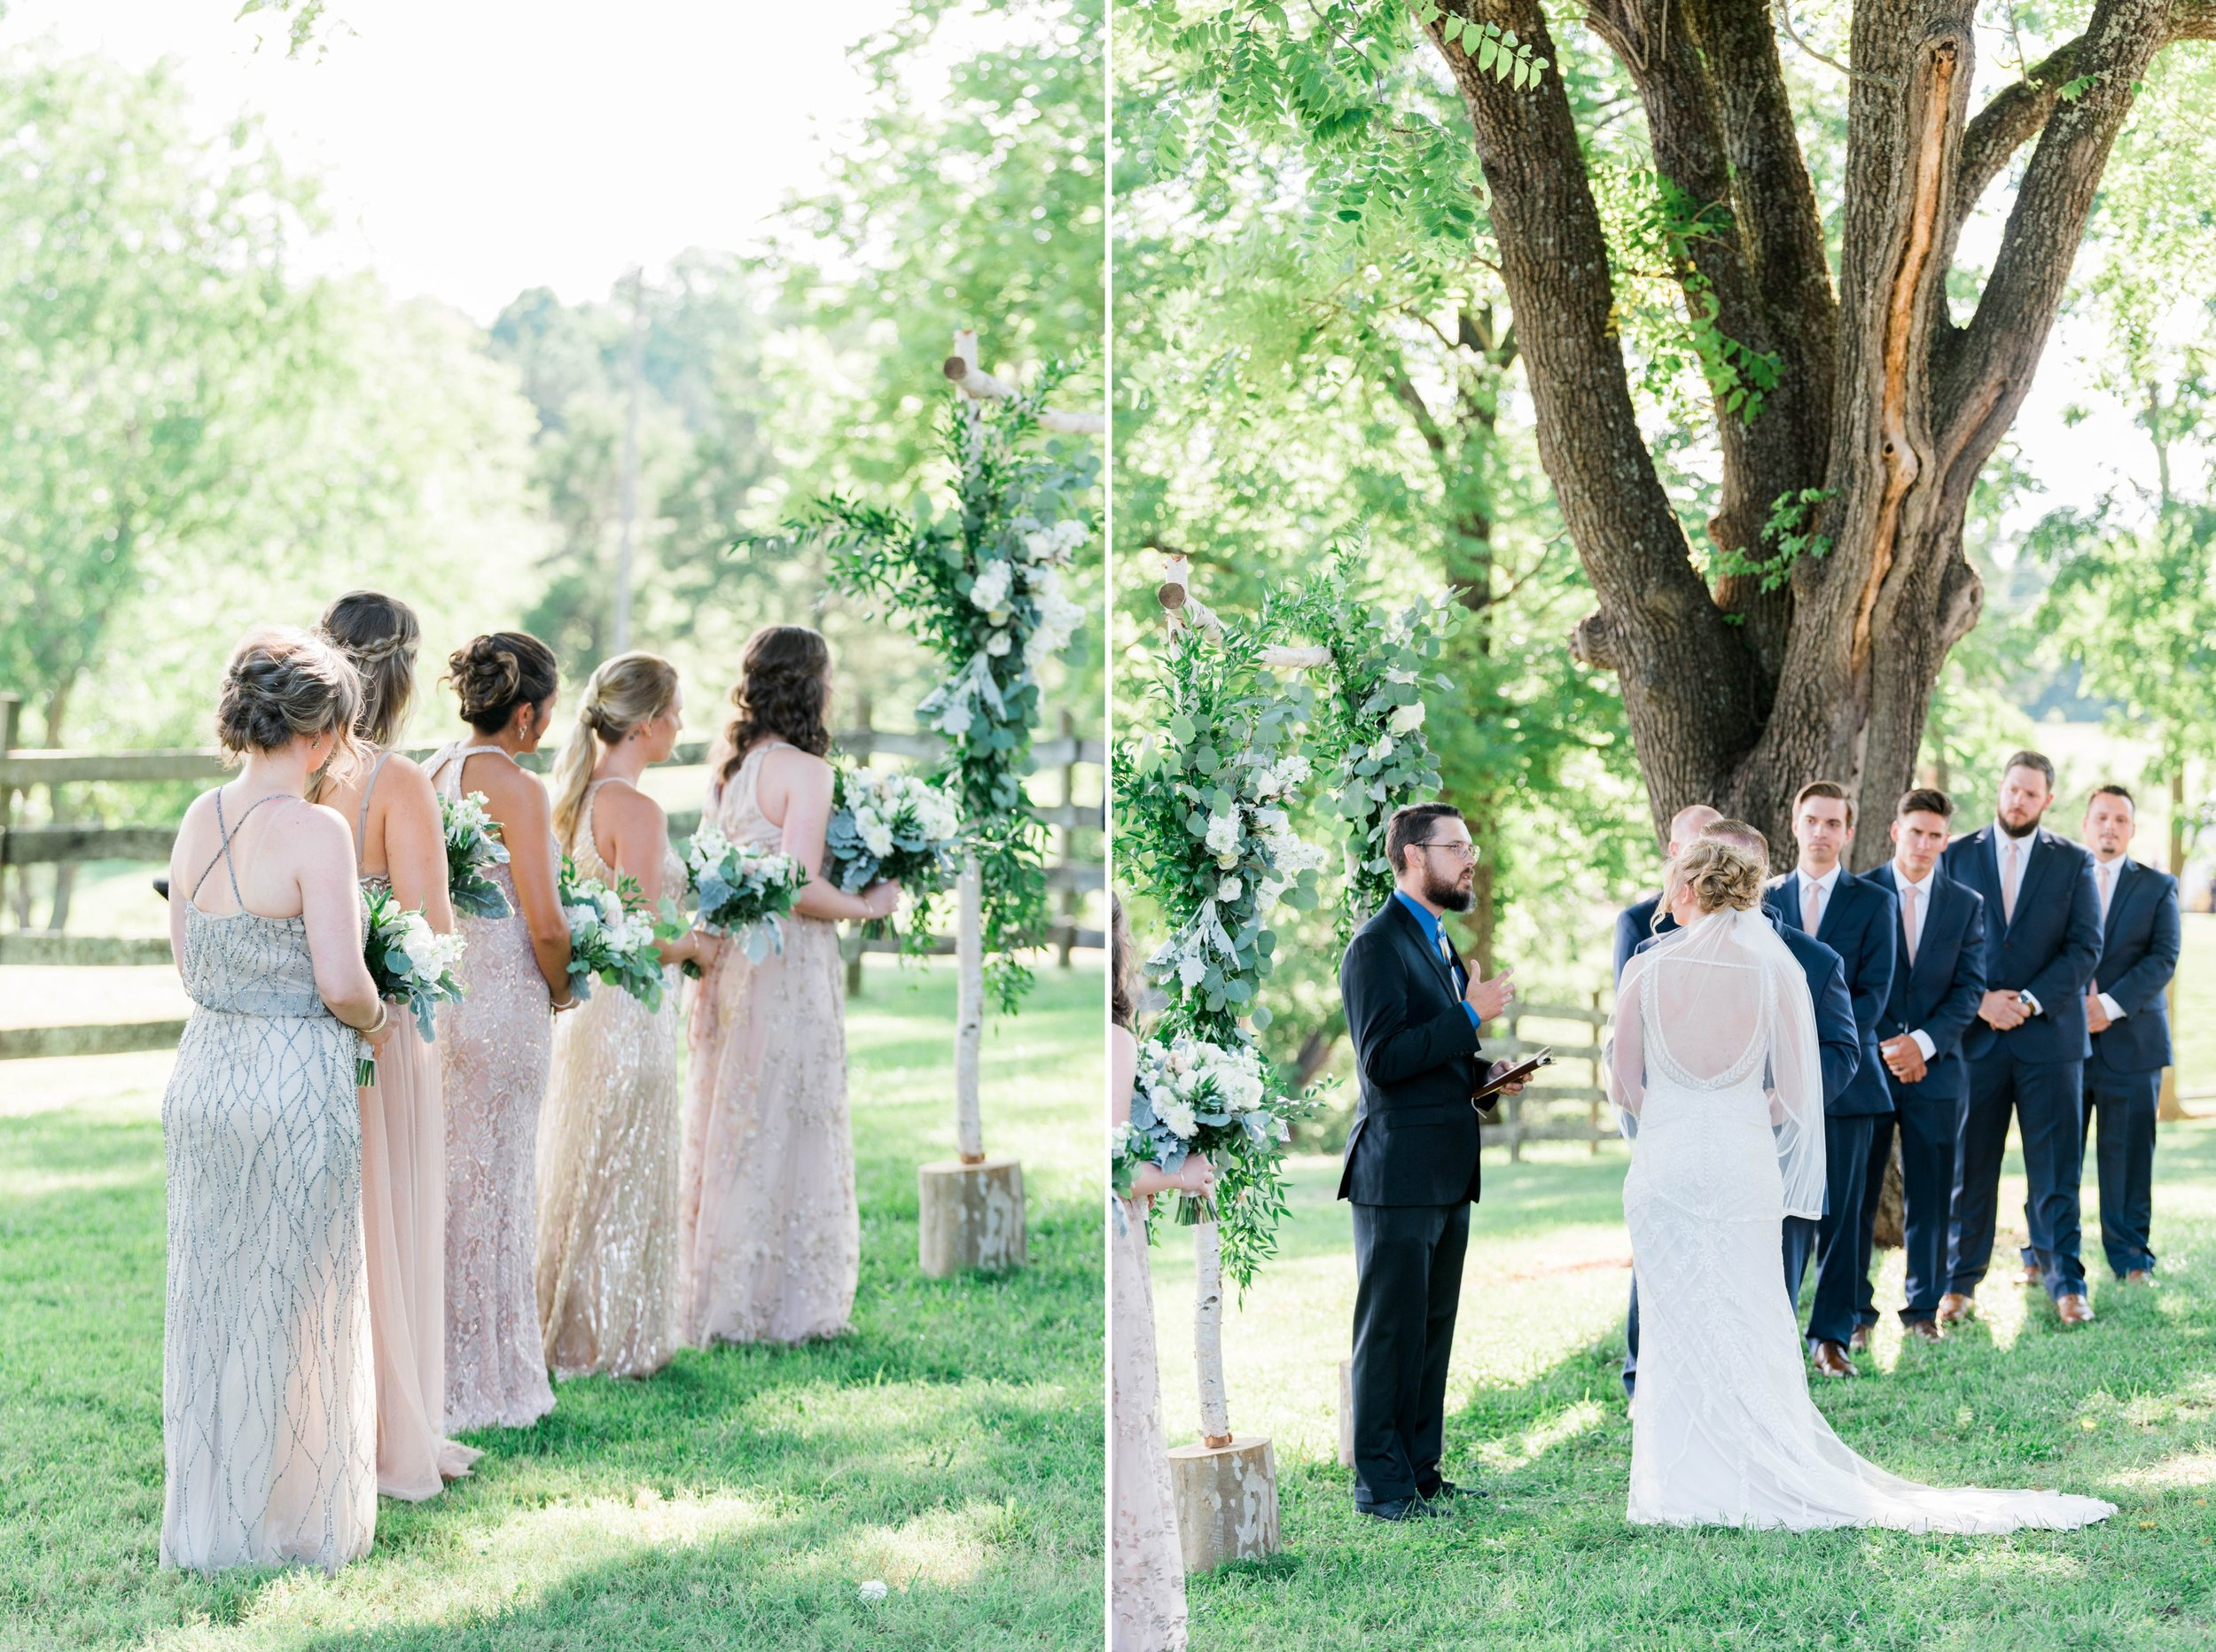 SorellaFarms_VirginiaWeddingPhotographer_BarnWedding_Lynchburgweddingphotographer_DanielleTyler 43.jpg